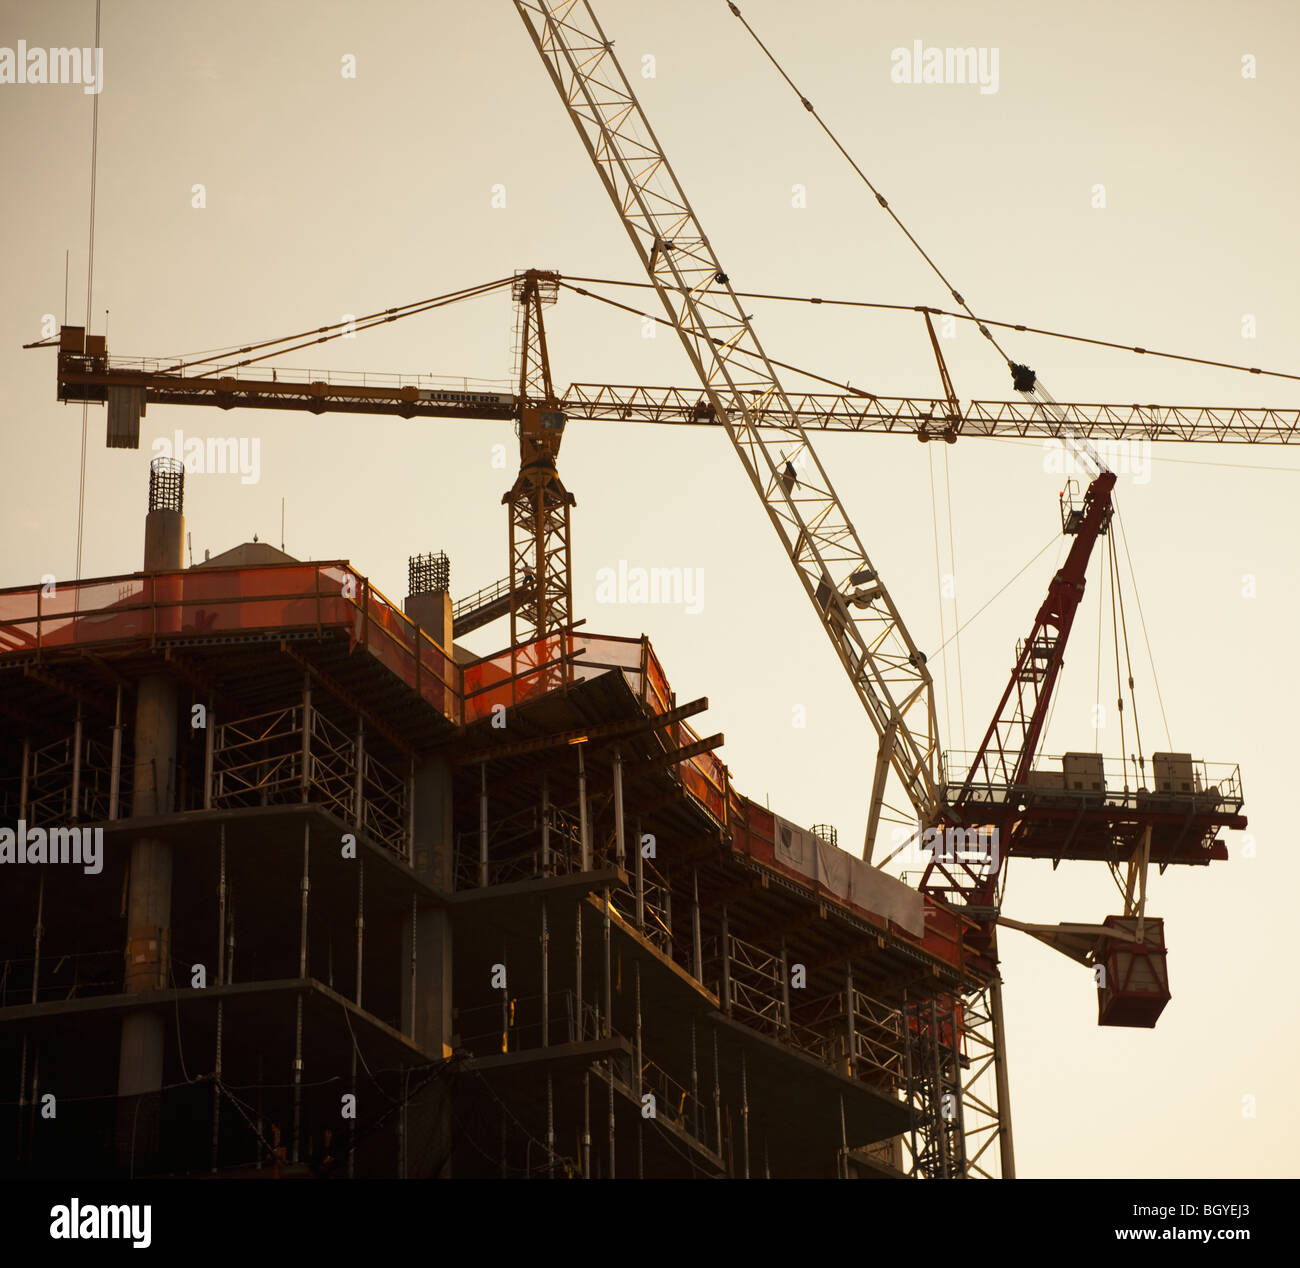 Cranes working - Stock Image